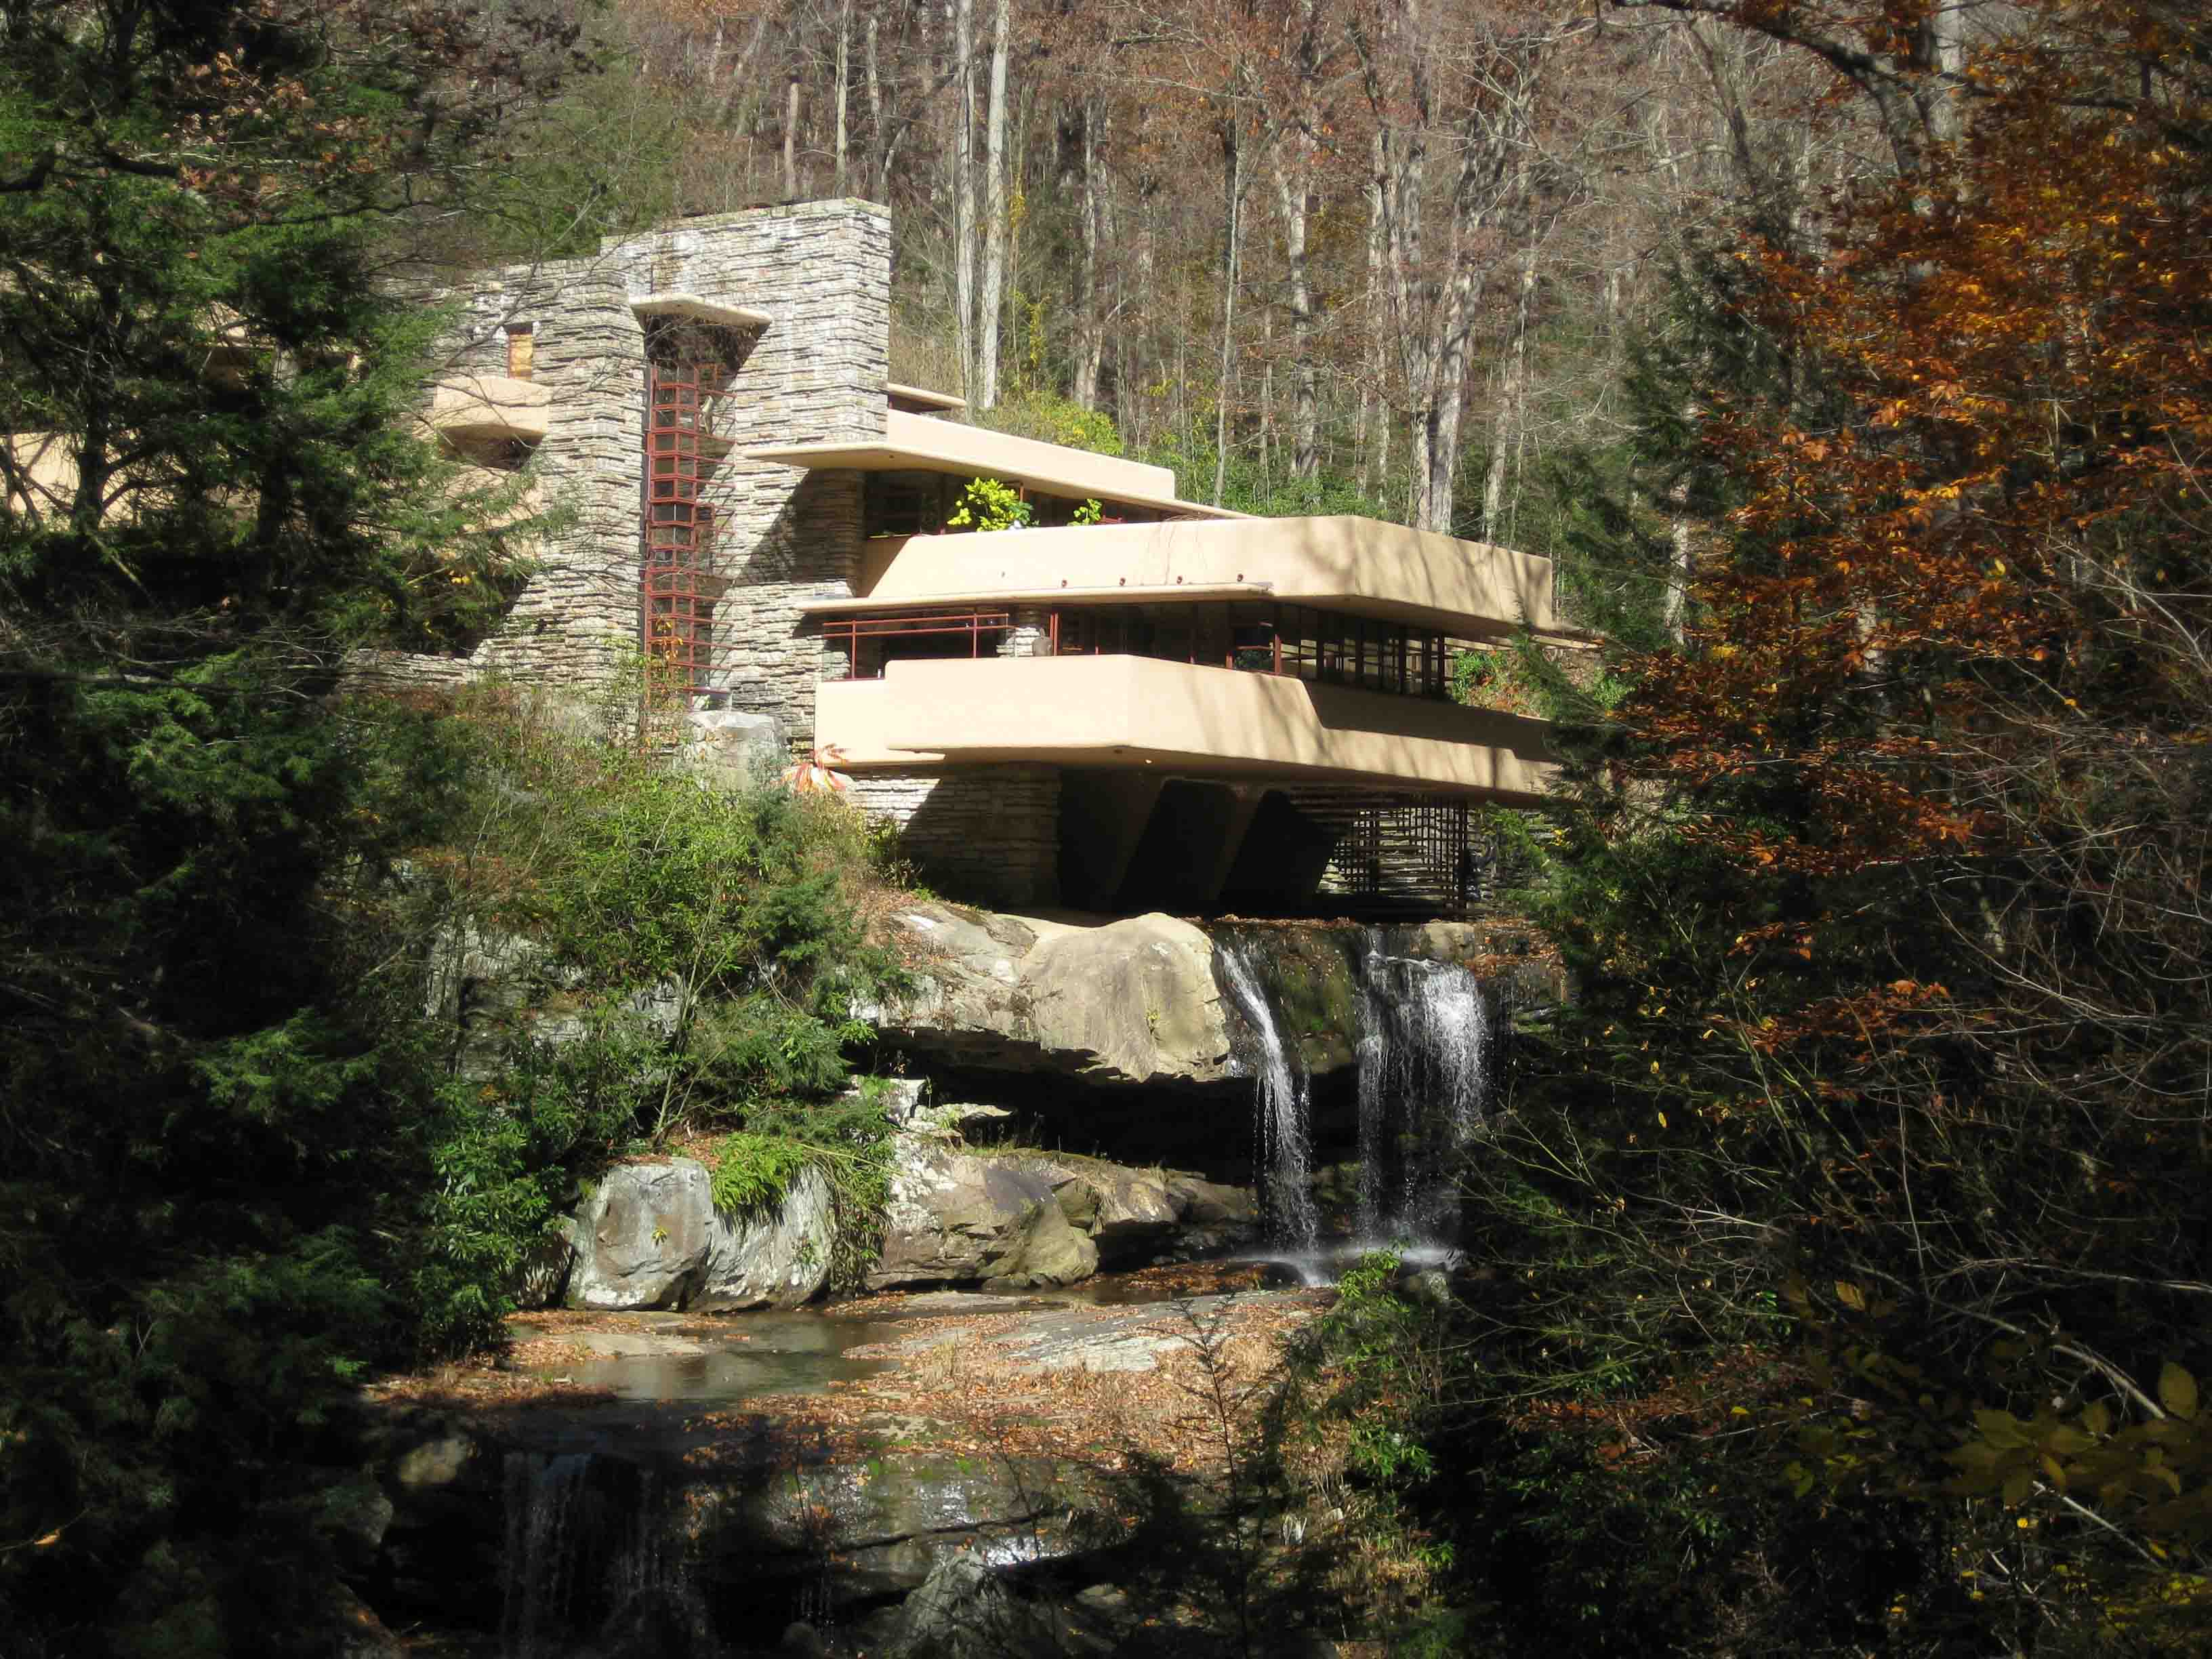 Frank Lloyd Wright Falling Water Wallpaper Fallingwater Etb Travel Photography